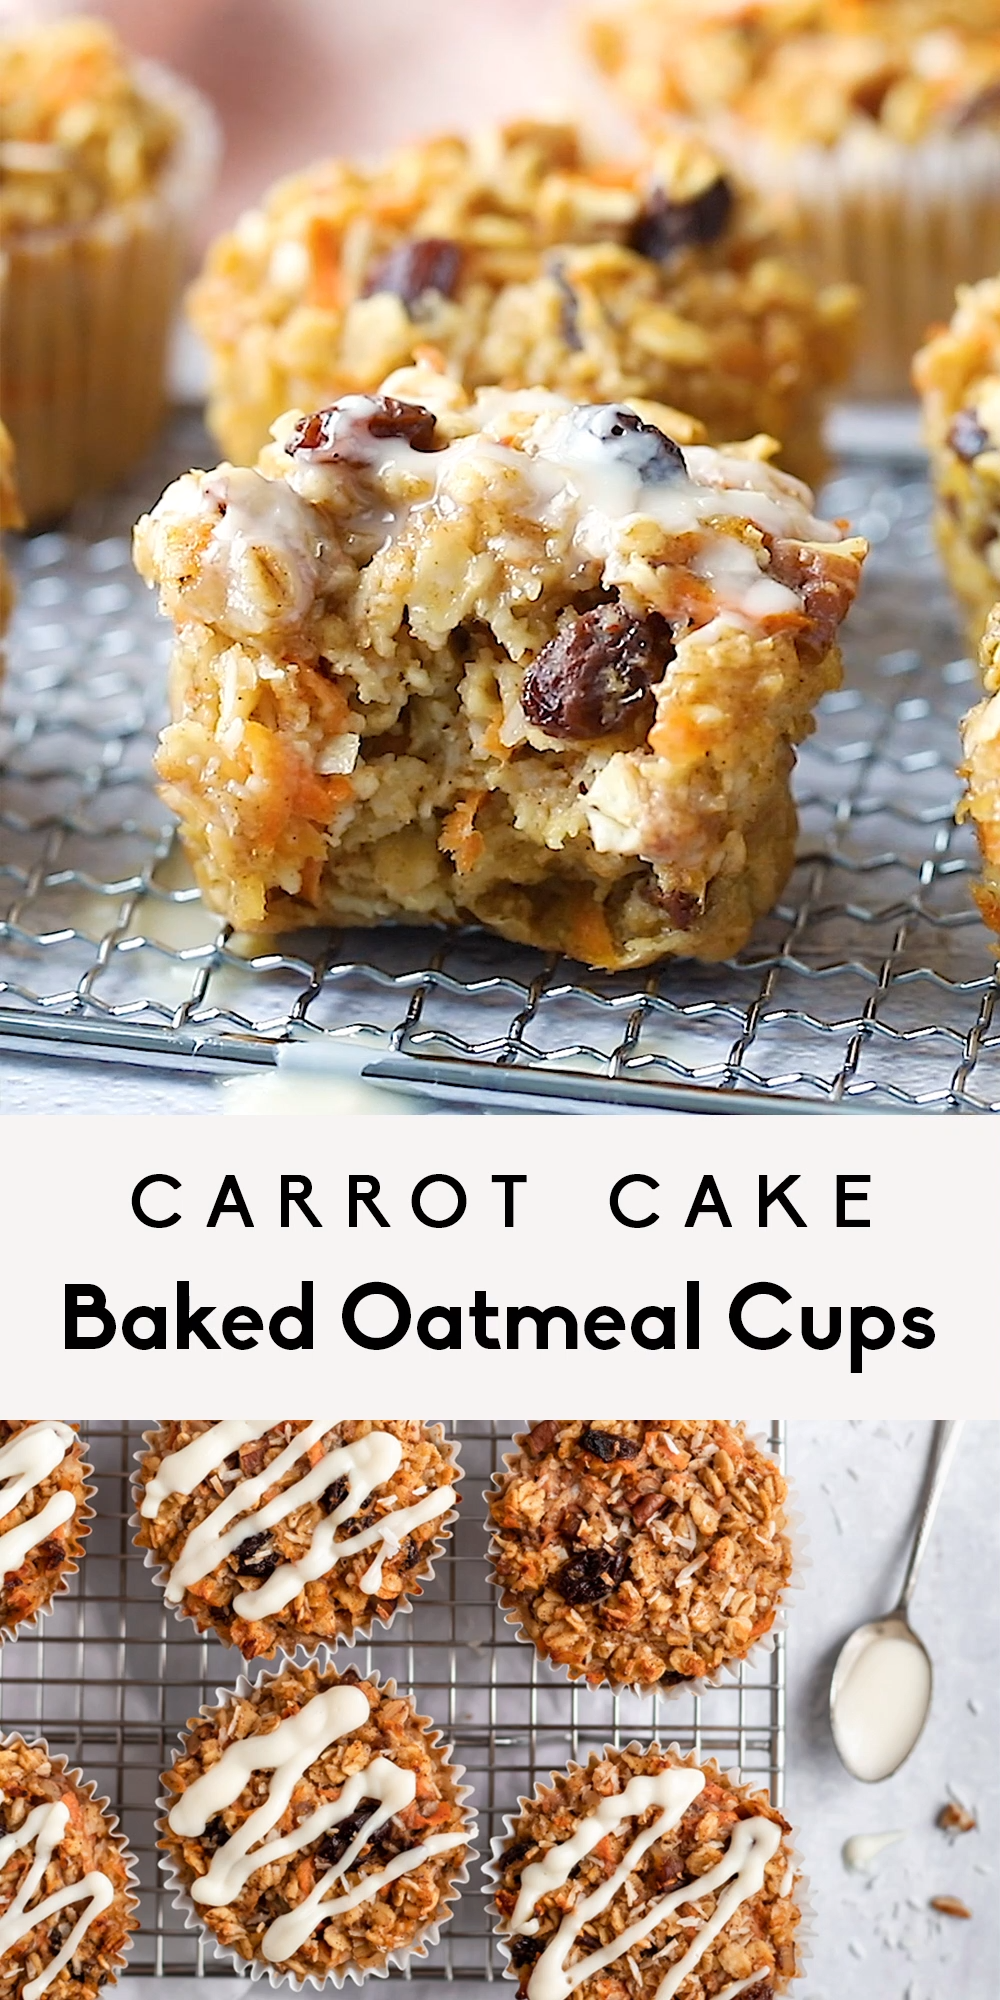 Carrot Cake Baked Oatmeal Cups Made some changes t